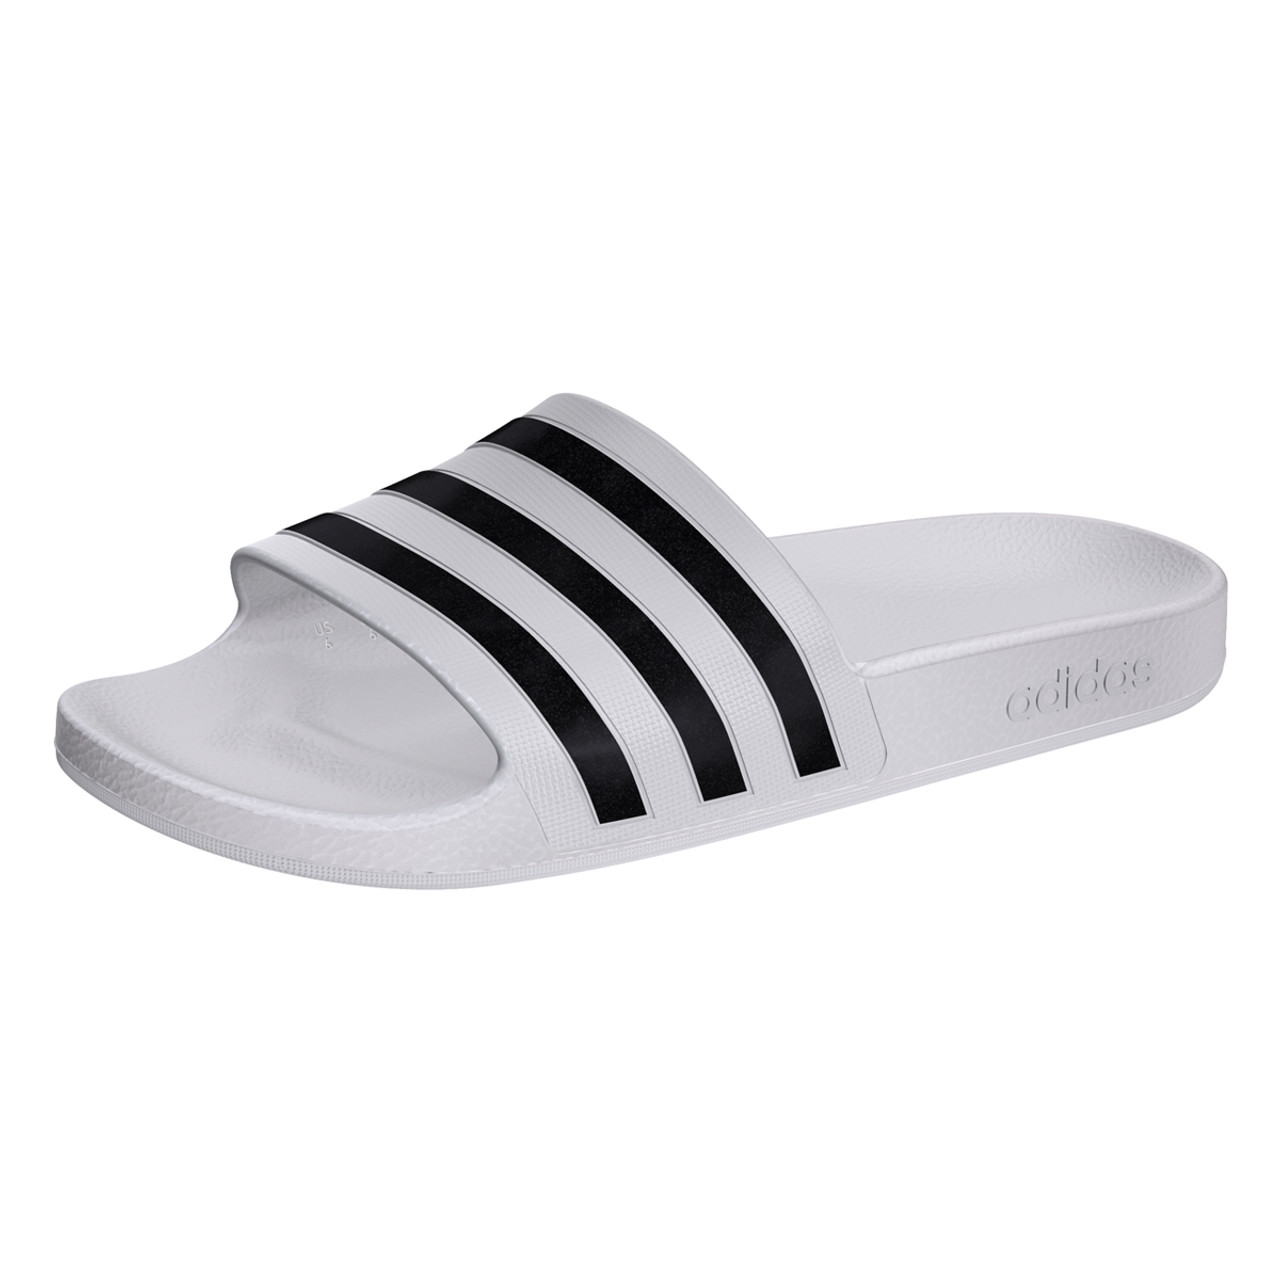 newest 6a73a 768b8 ... Adidas Adilette Aqua Womens Sandals G28719 ...